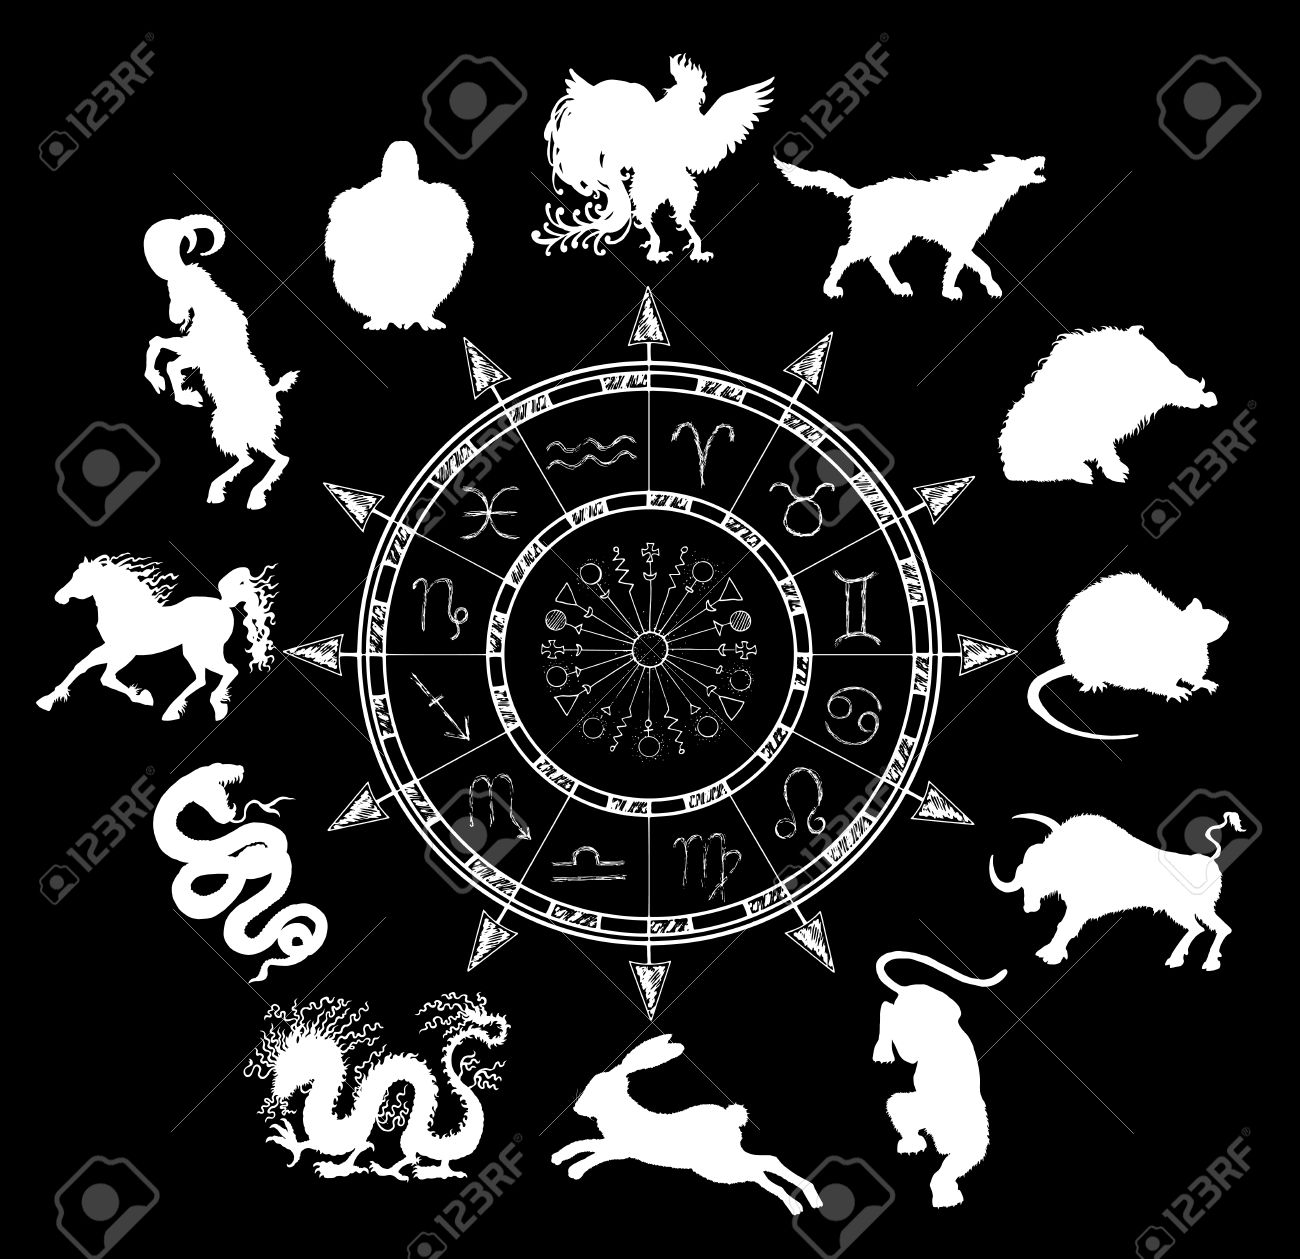 Black chart with horoscope symbols and chinese zodiac animals black chart with horoscope symbols and chinese zodiac animals silhouettes asian new year calendar signs nvjuhfo Image collections